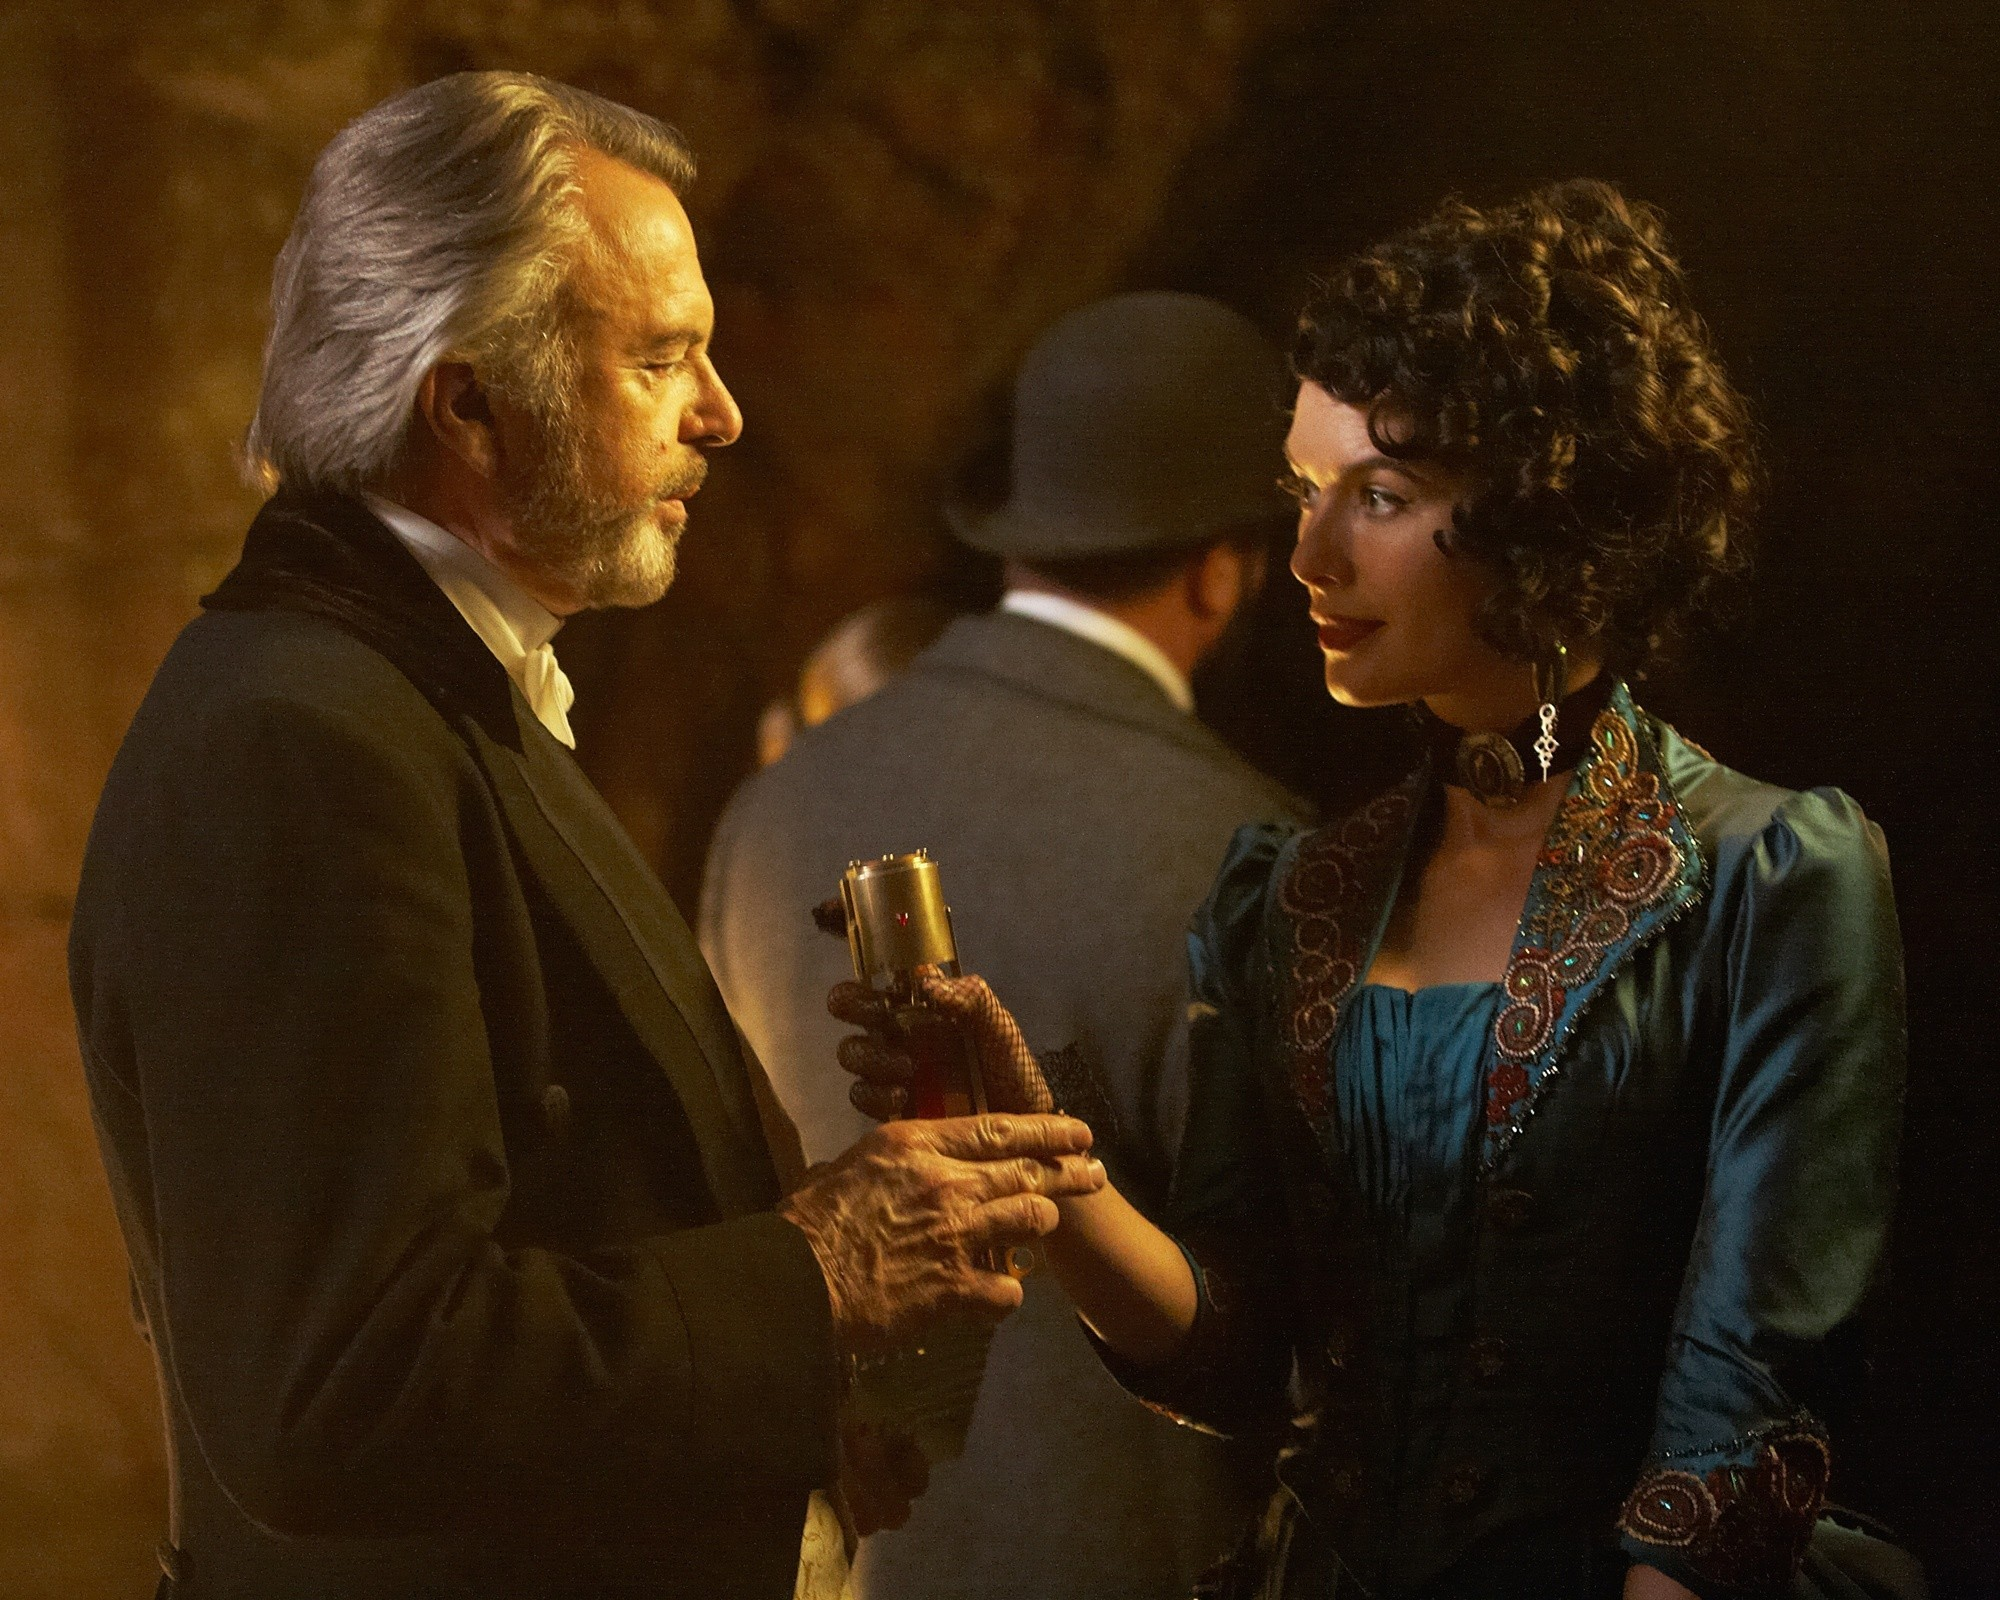 Sam Neill stars as Otto Luger and Lena Headey stars as Monica in Image Entertainment's The Adventurer: The Curse of the Midas Box (2014)